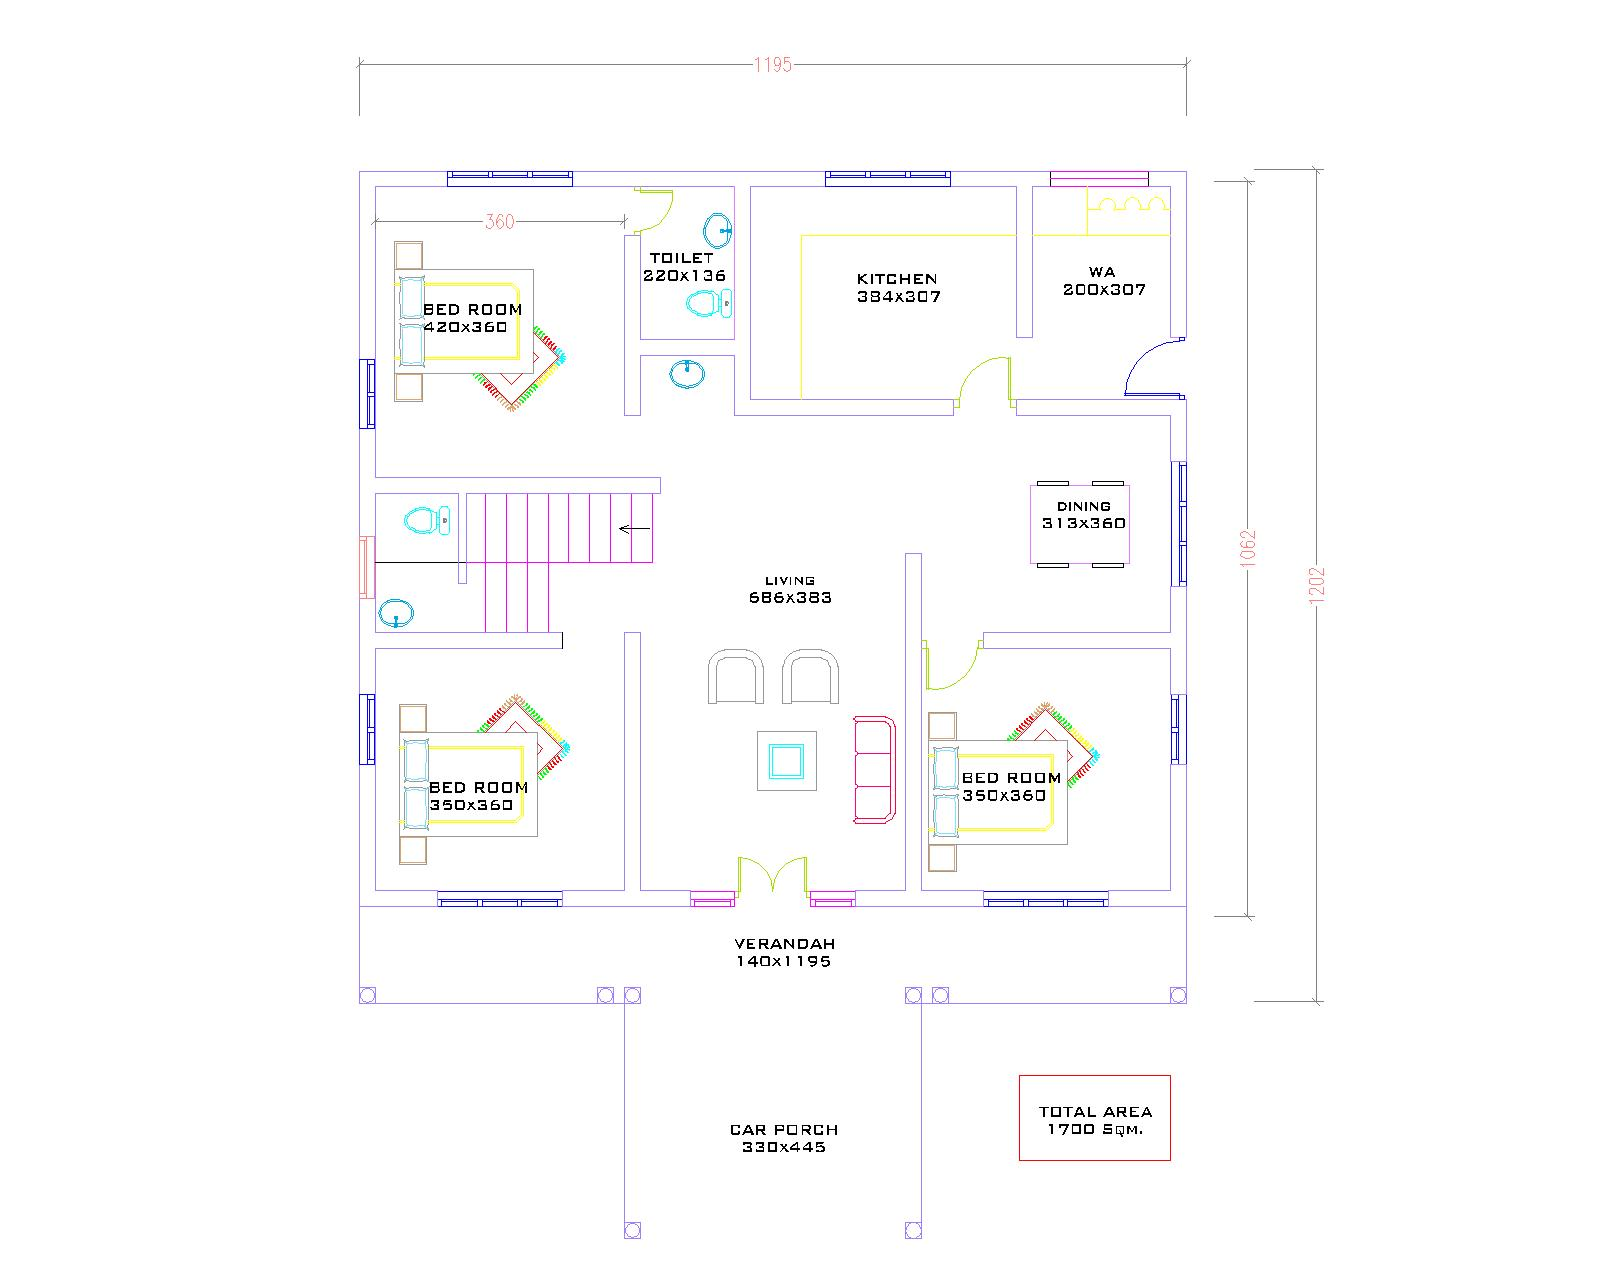 Plan details additionally Casa Chica De 1 Dormitorio Sin Garage in addition One Story House Plans With Porch additionally Plan details also Principle Of Greenhouse Structures Construction. on simple one floor house plans